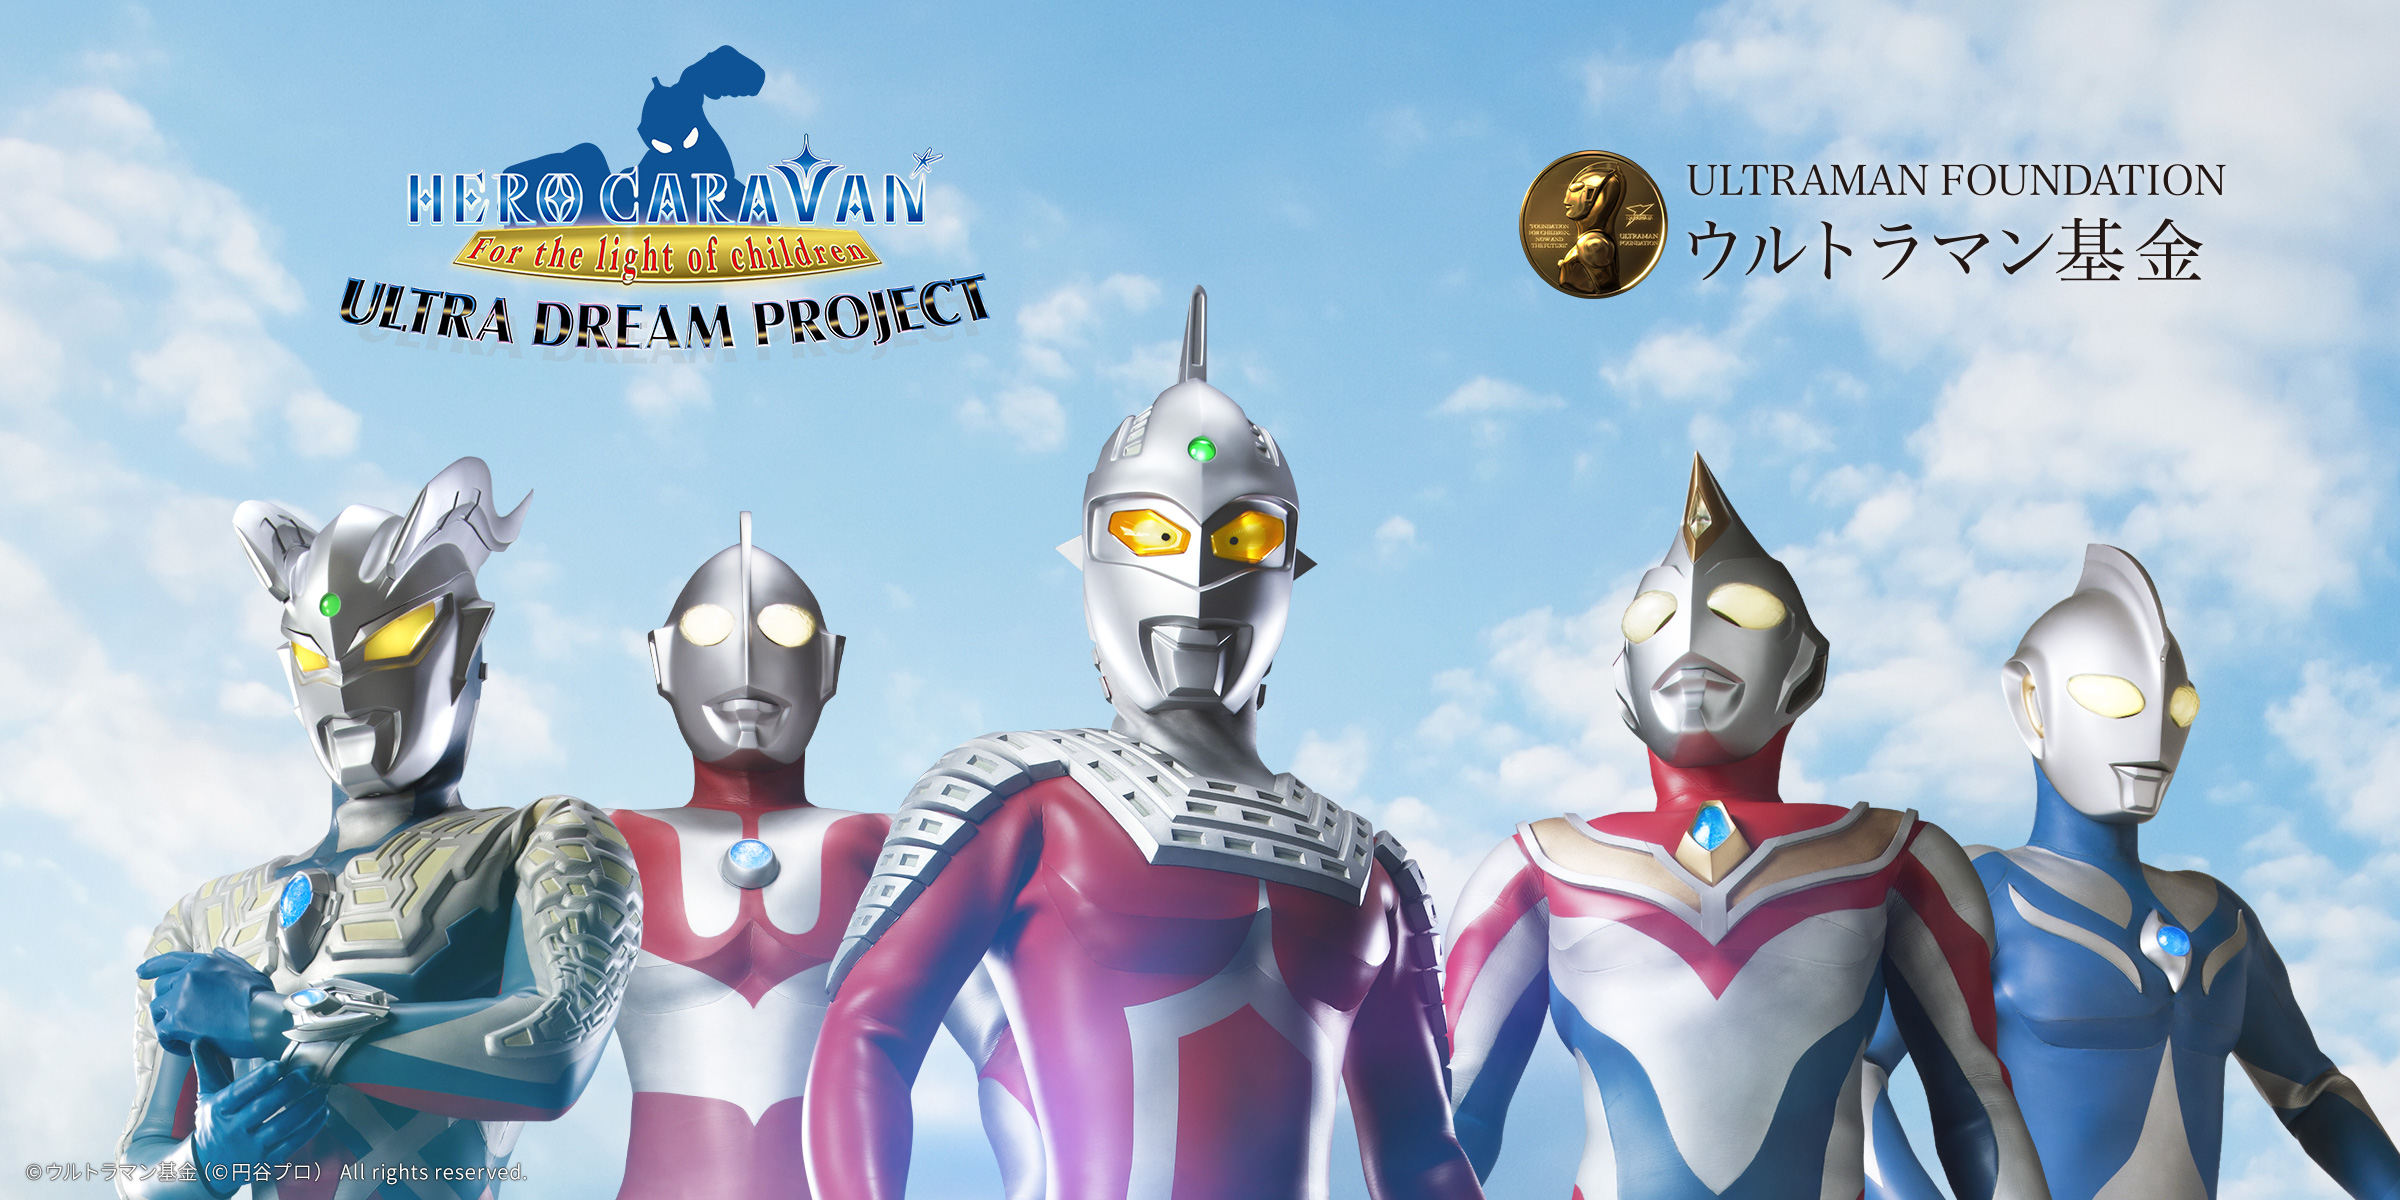 ULTRAMAN FOUNDATION